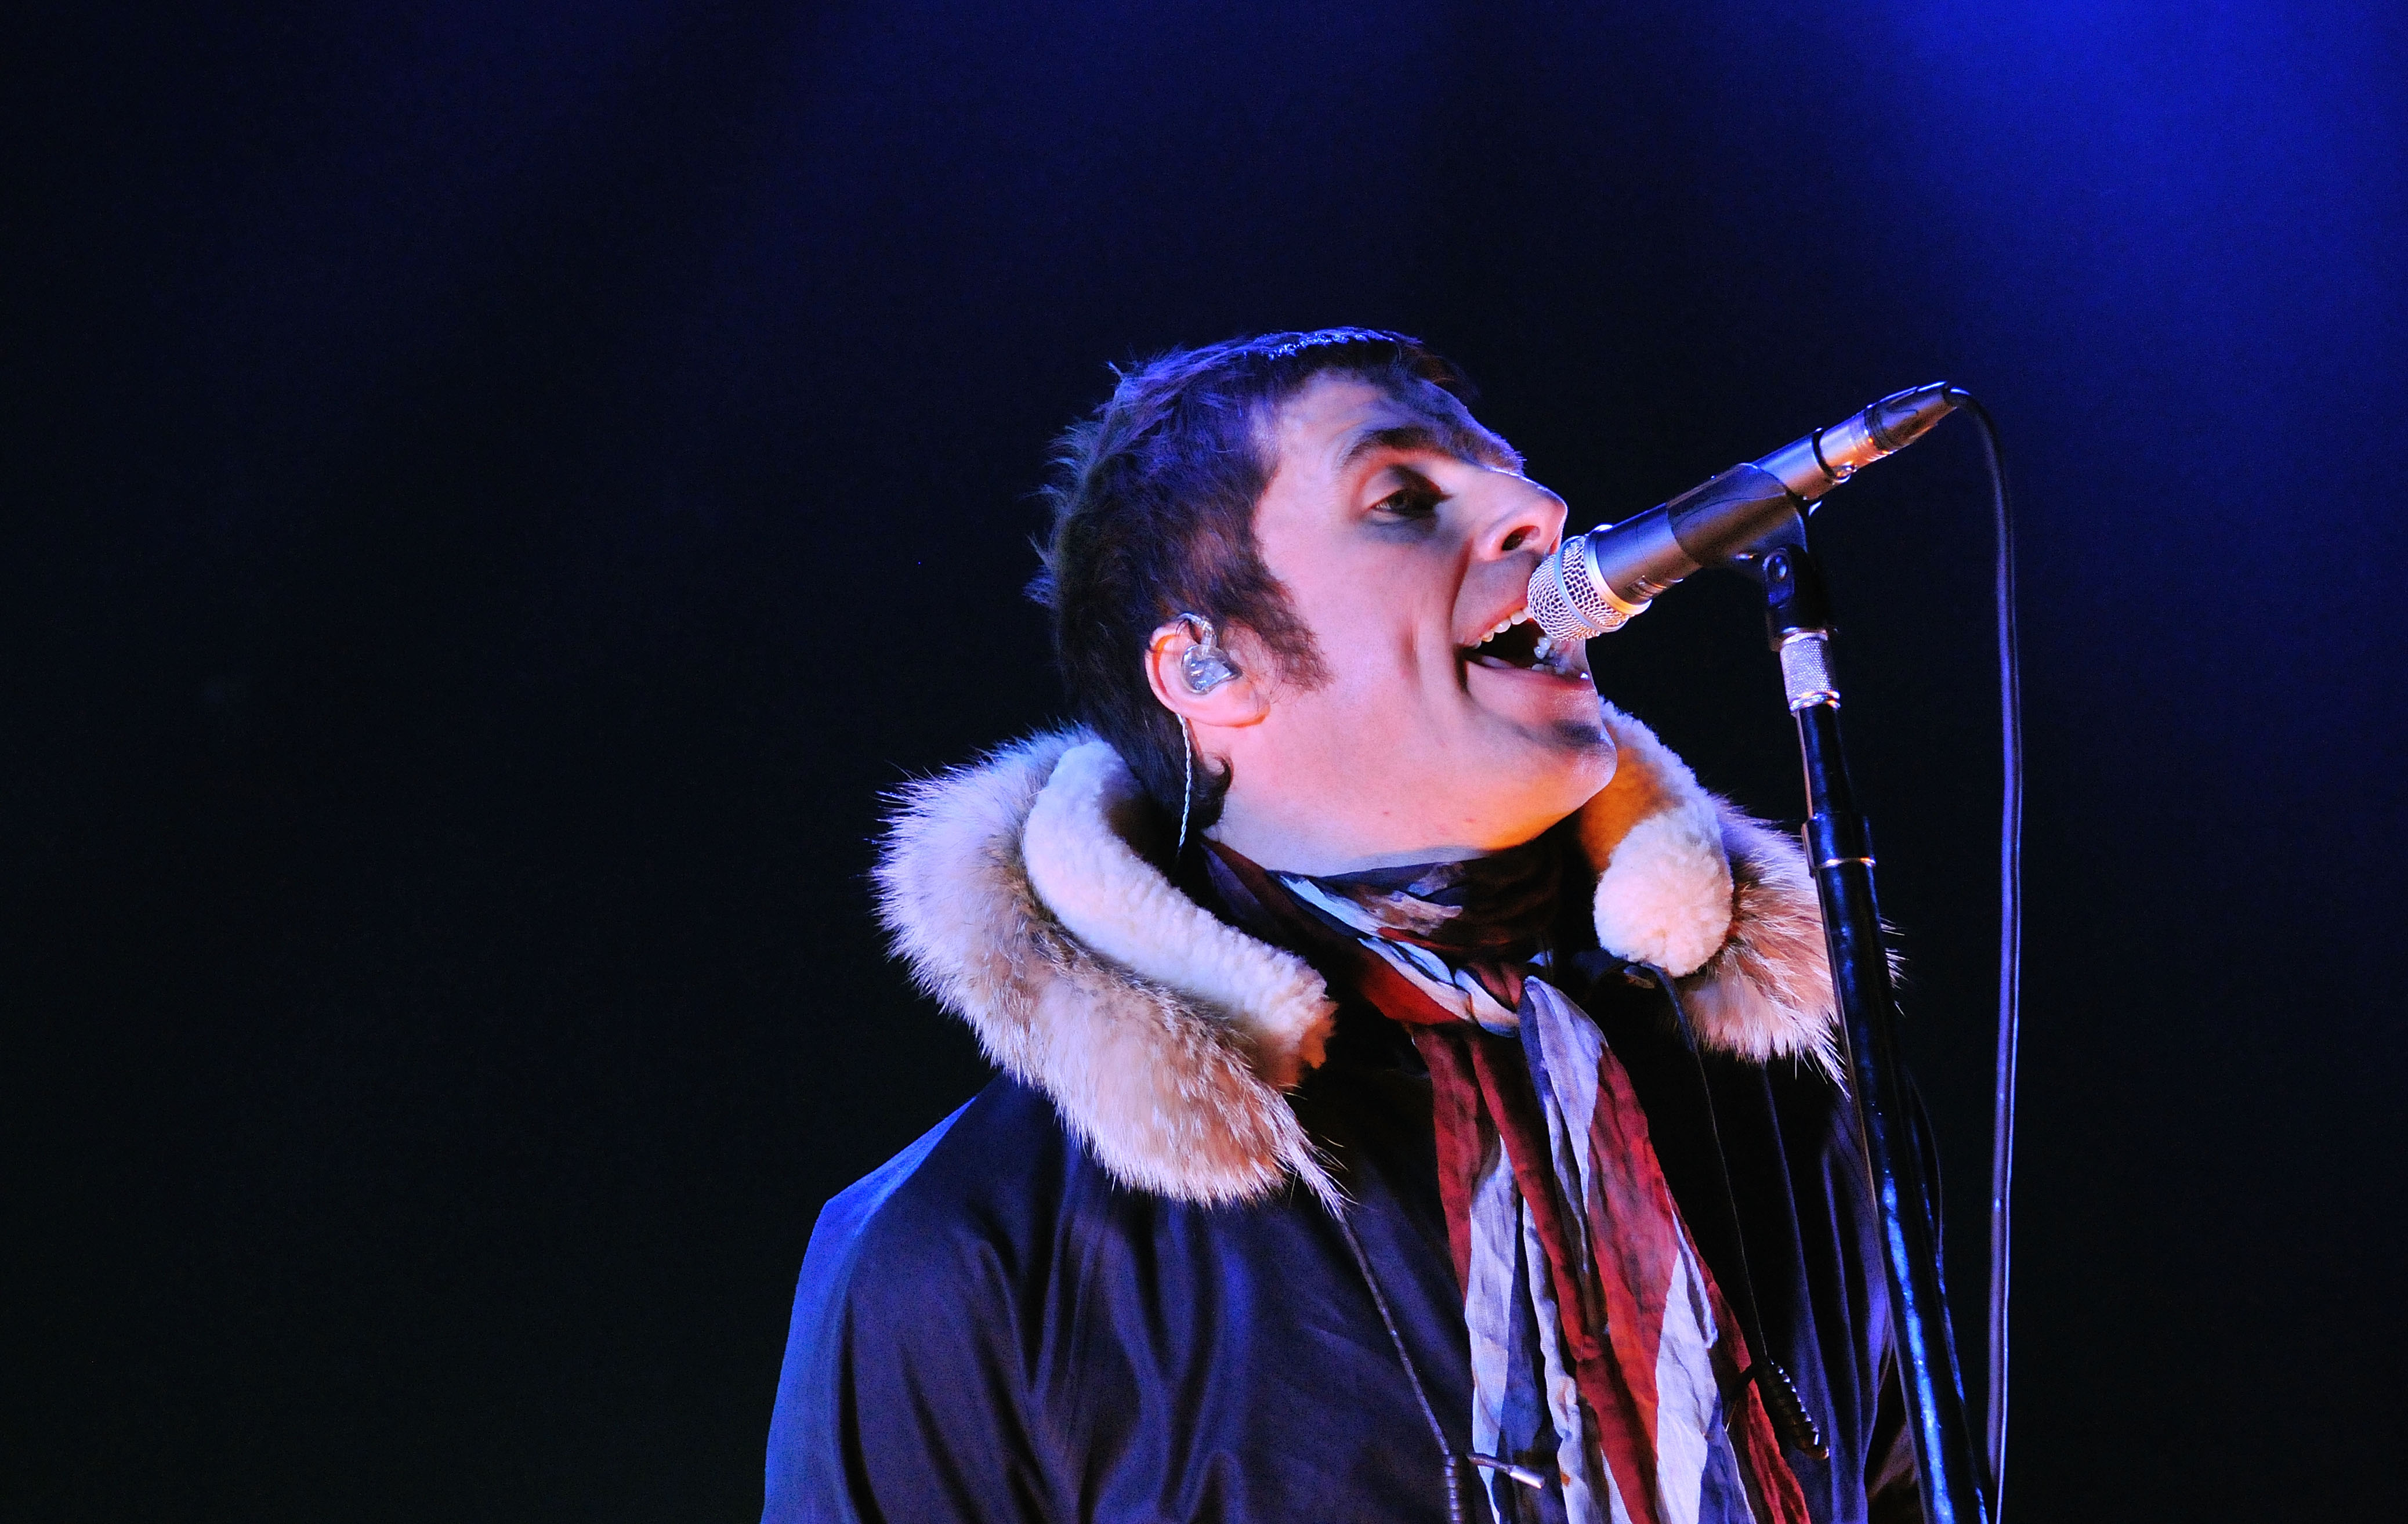 LONDON, ENGLAND - NOVEMBER 21:  Liam Gallagher of Beady Eye performs live on stage at Hammersmith Apollo, on November 21, 201